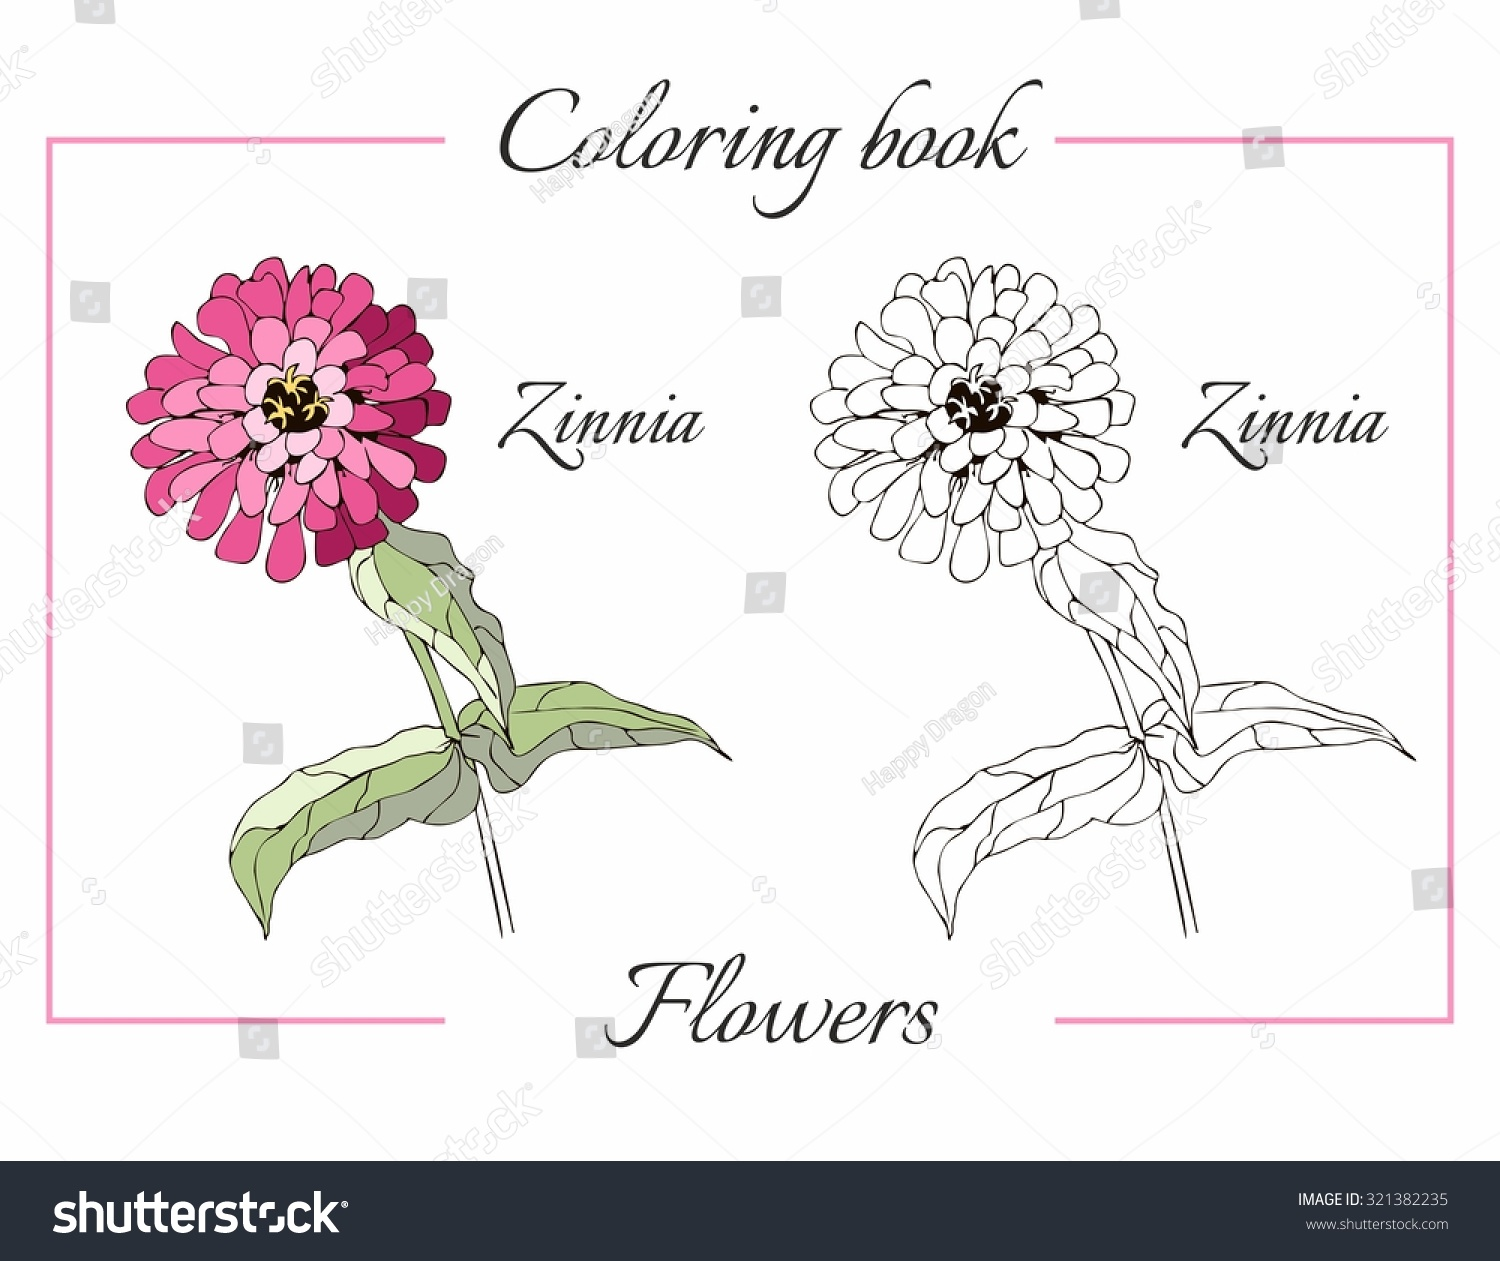 Coloring pages zinnia - Coloring Book With Beautiful Zinnia Flower Cartoon Vector Illustration For Children Education